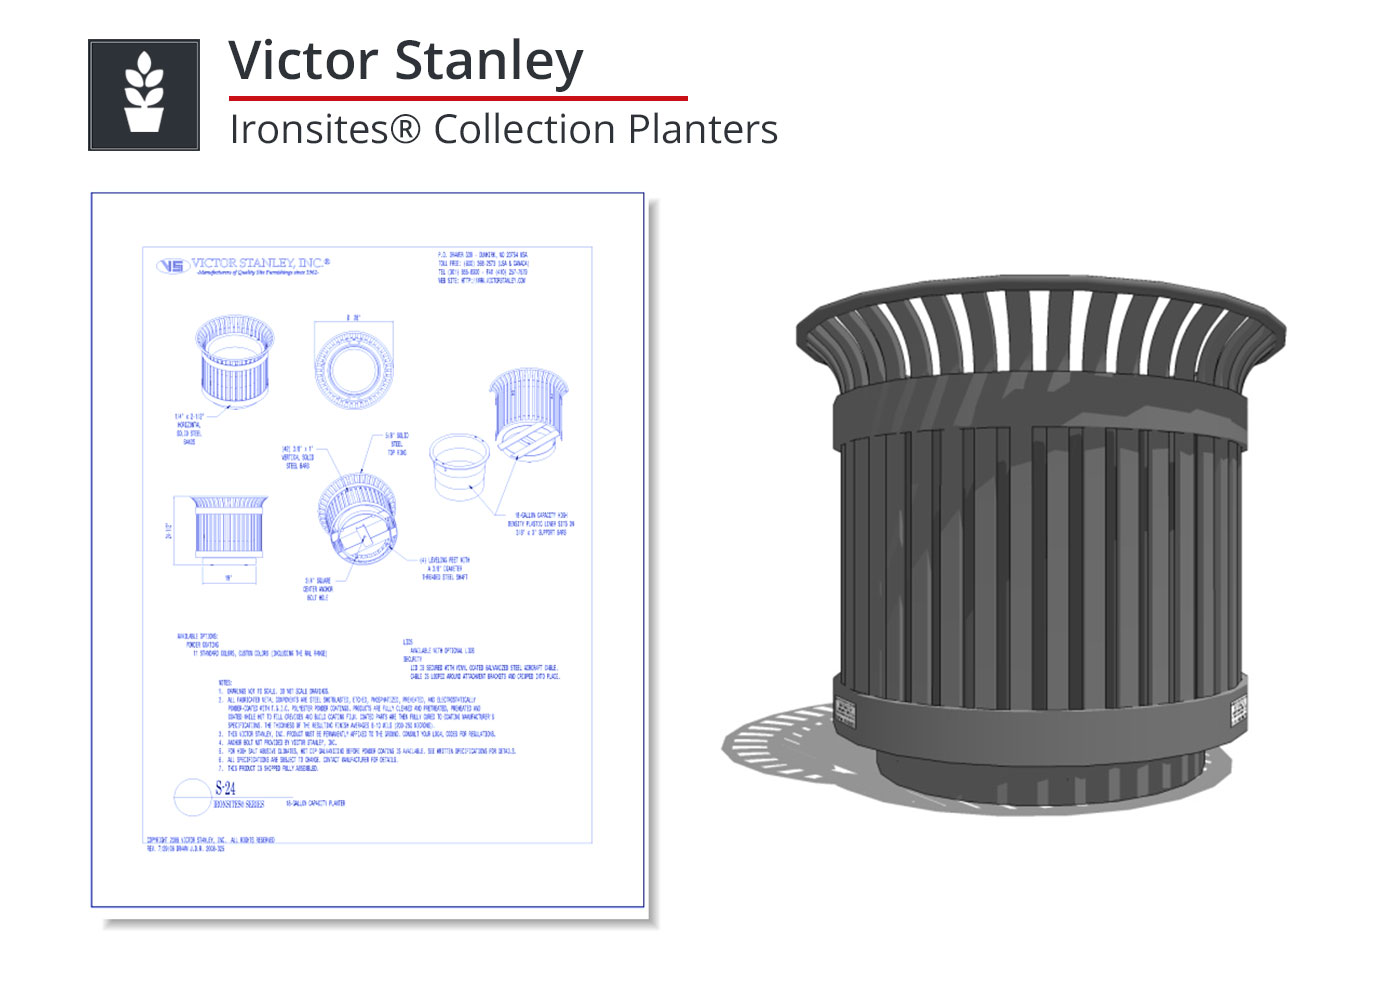 Victor-Stanley-Ironsites-Collection-Planter-CAD-Drawing.jpg